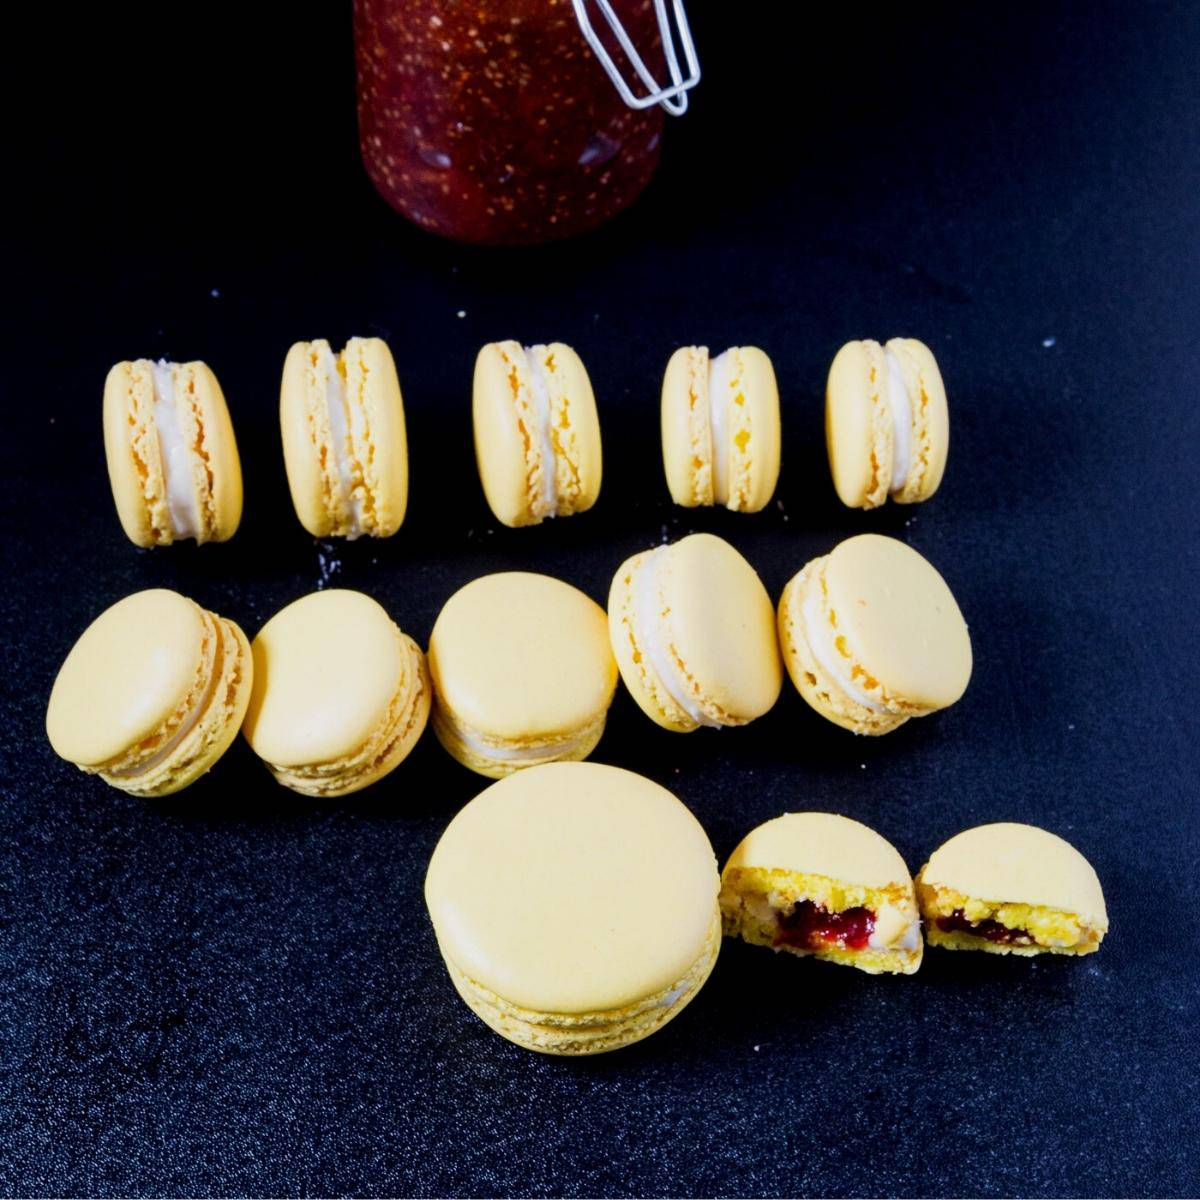 A stack of macarons on the black board